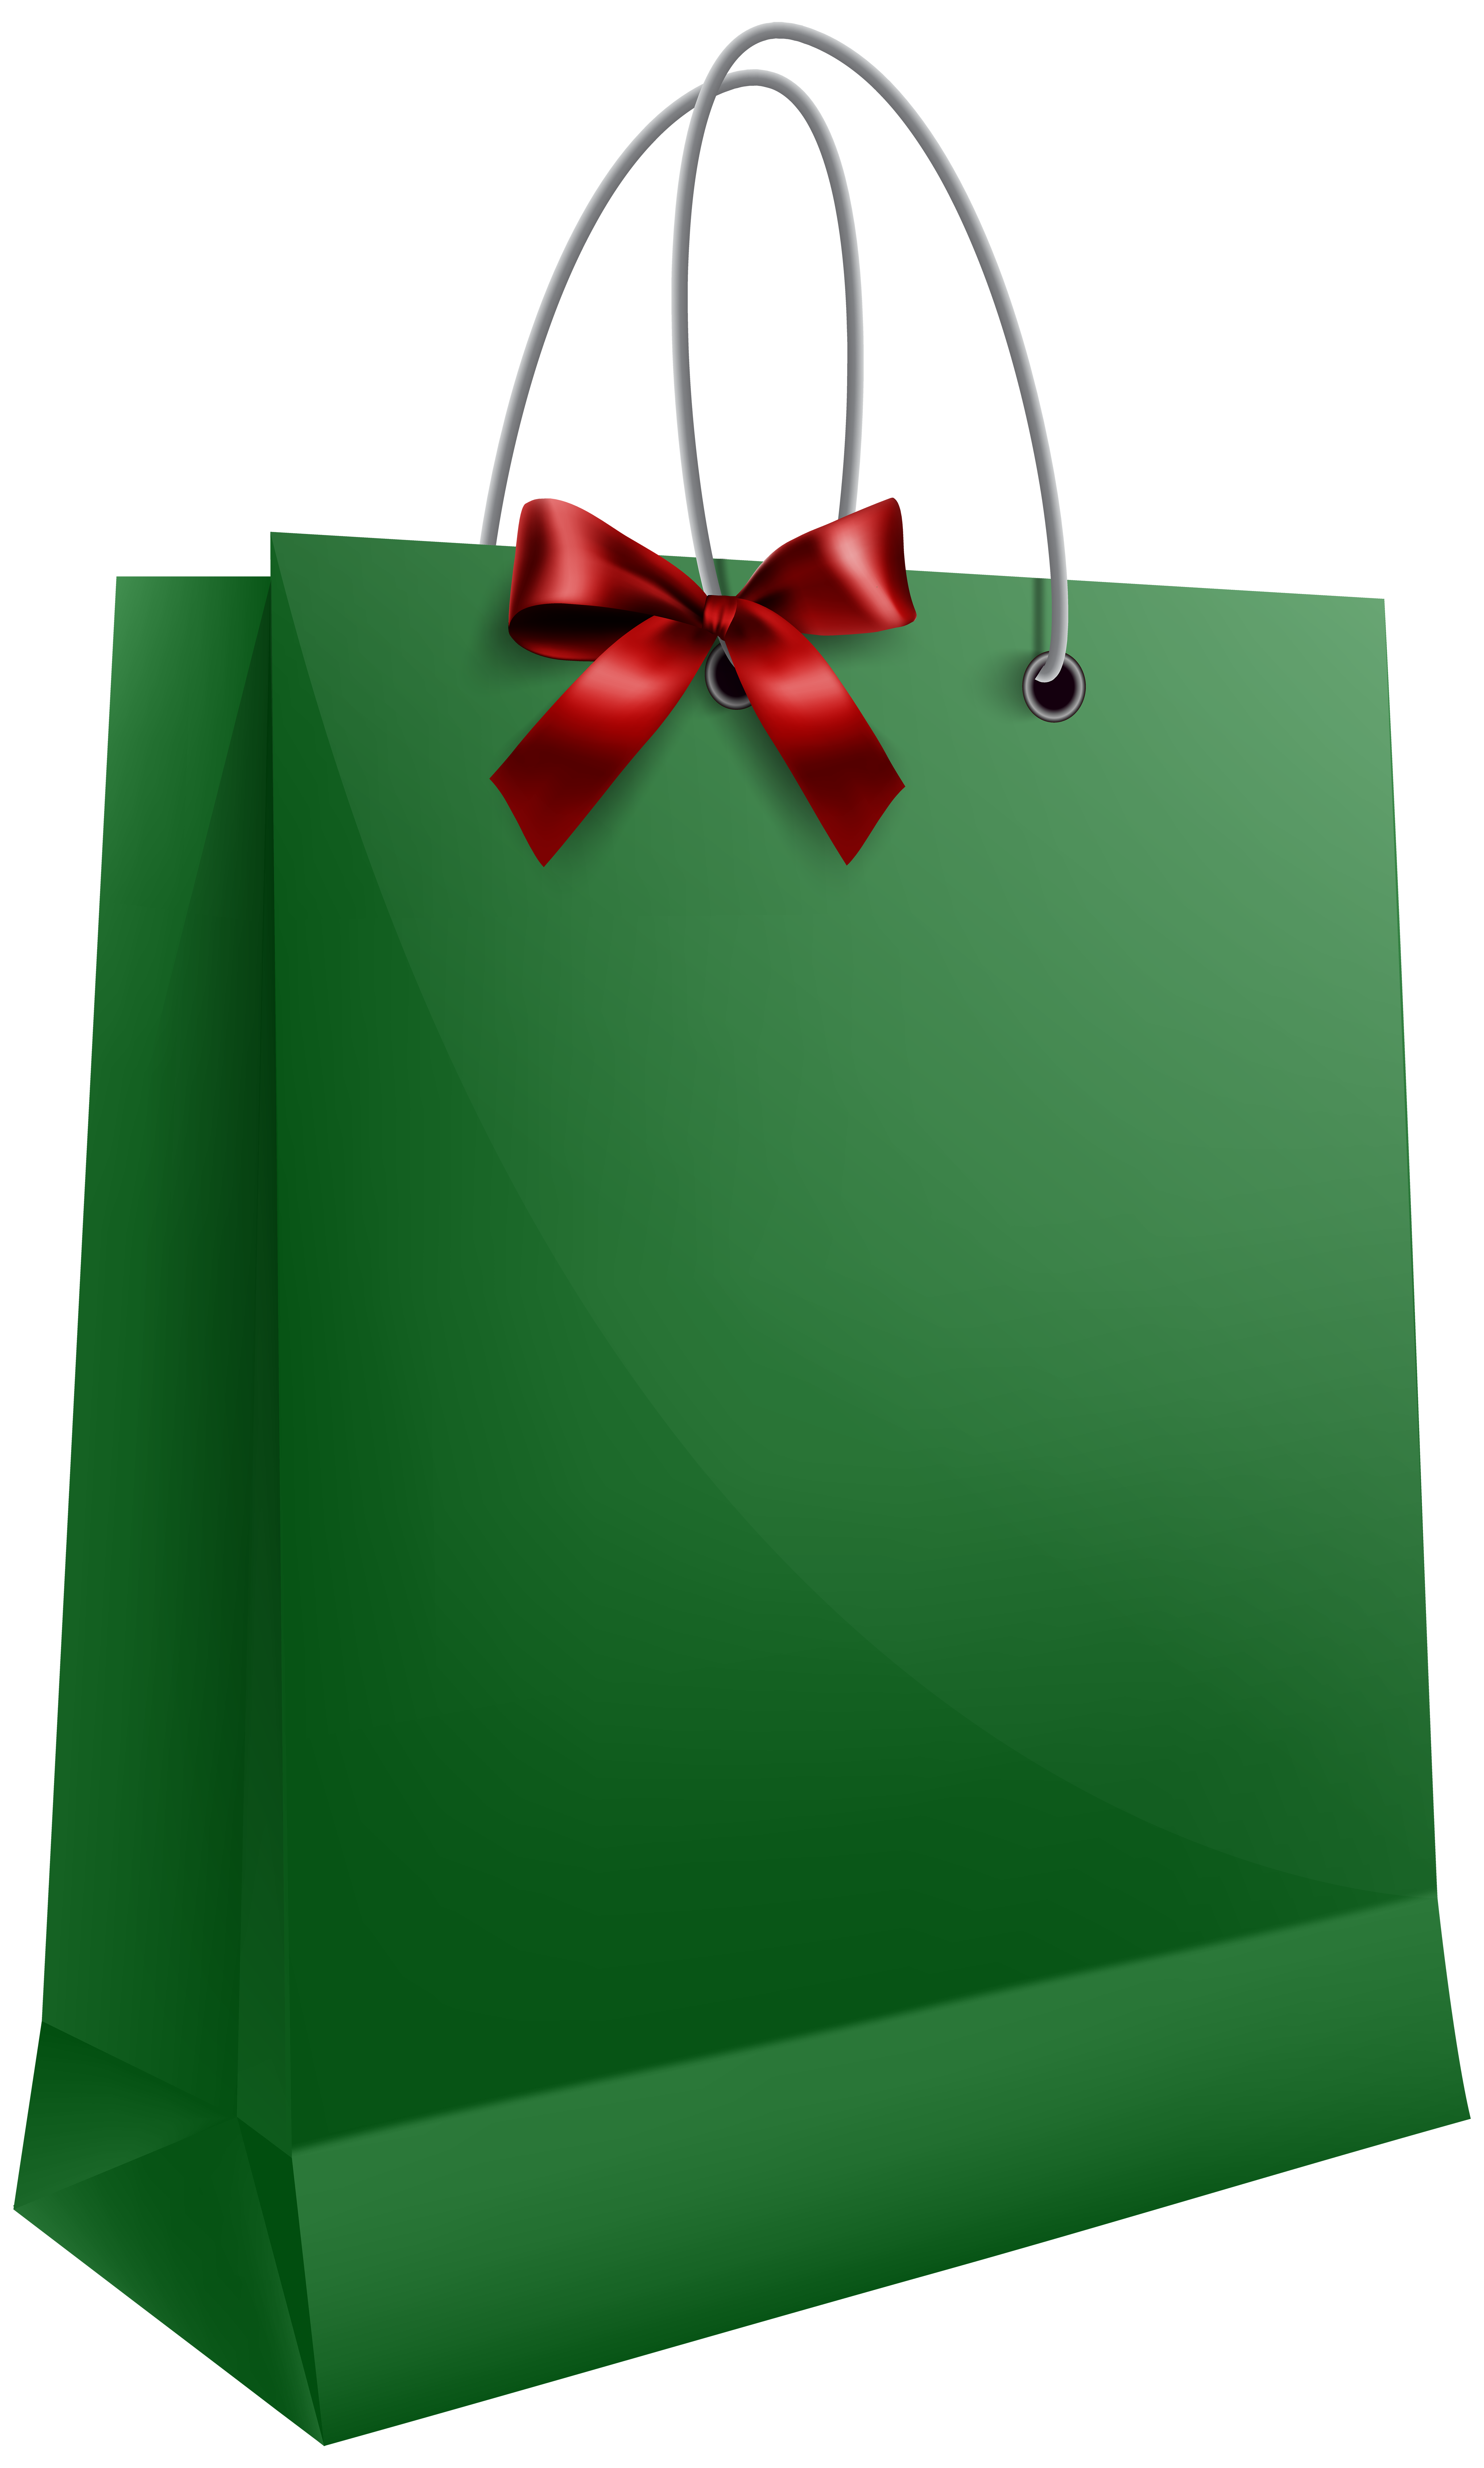 Gift bag clipart clipground green gift bag with bow png clip art image negle Choice Image